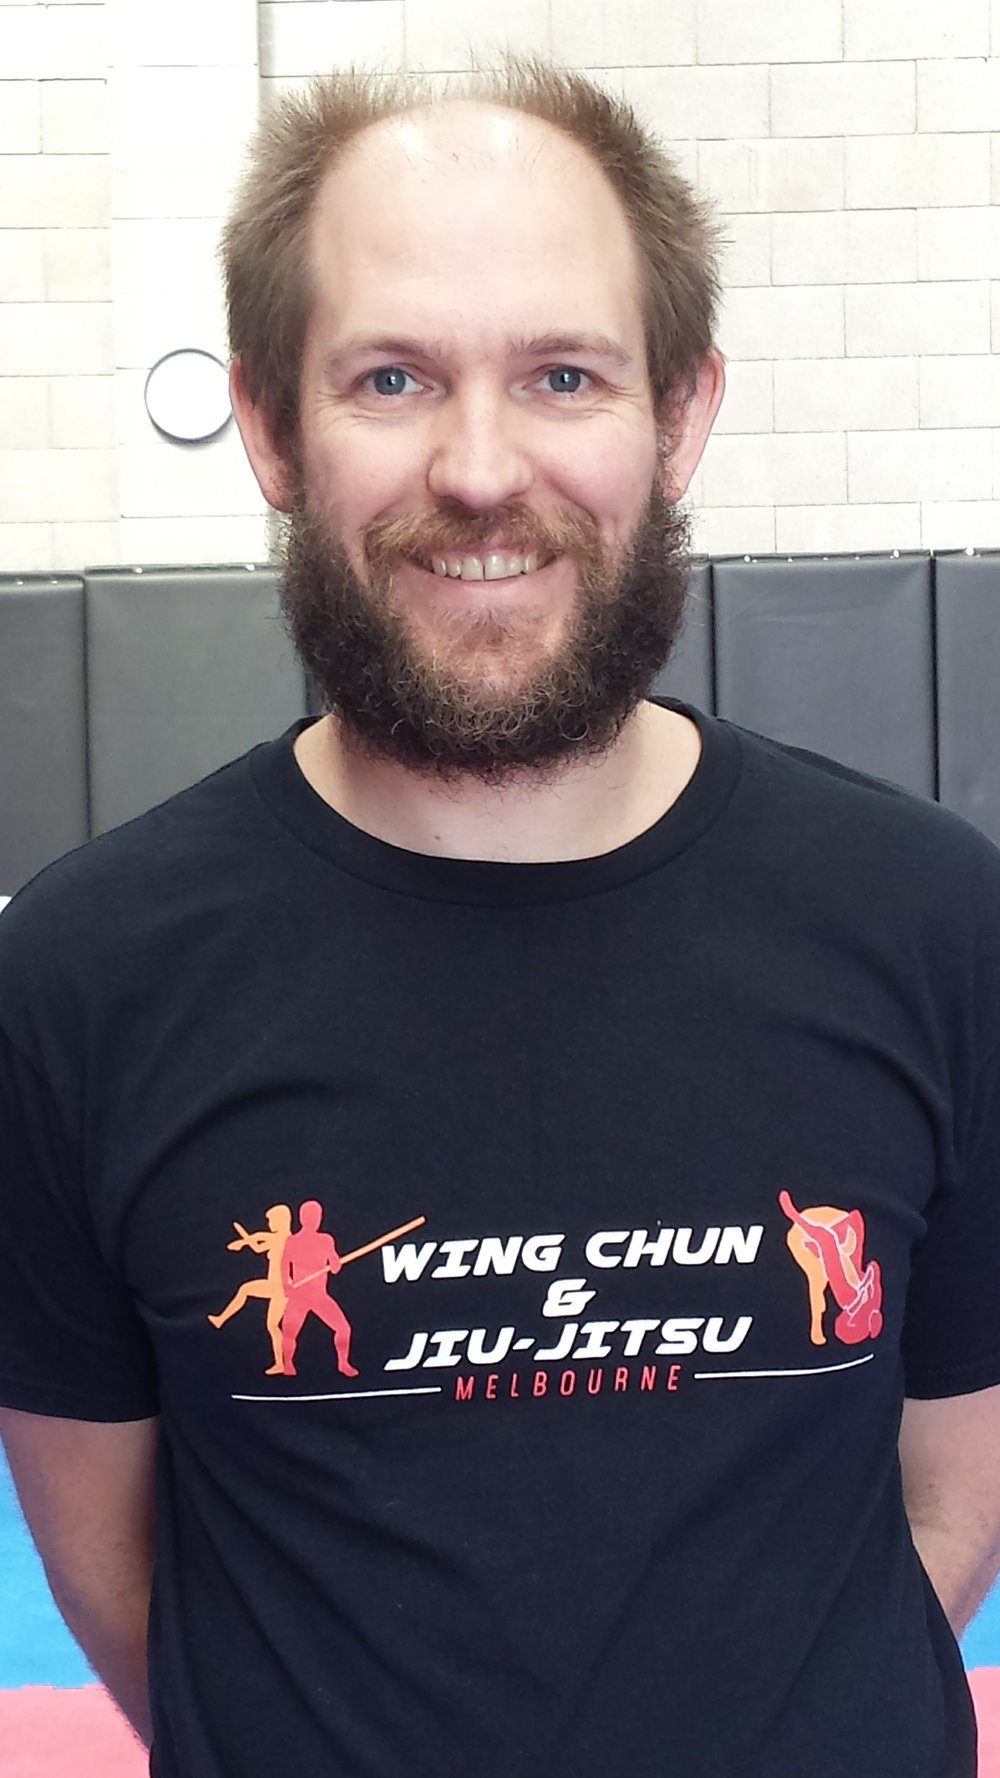 """Our instructor, Declan Eipper, has taught children martial arts and held a """"Working with Children Permit"""" since 2012. Declan was bullied himself as a child and has the compassion and empathy to help your child deal with, and if necessary, confront bullies. He will help your child develop psychological resilience to bullying. -"""